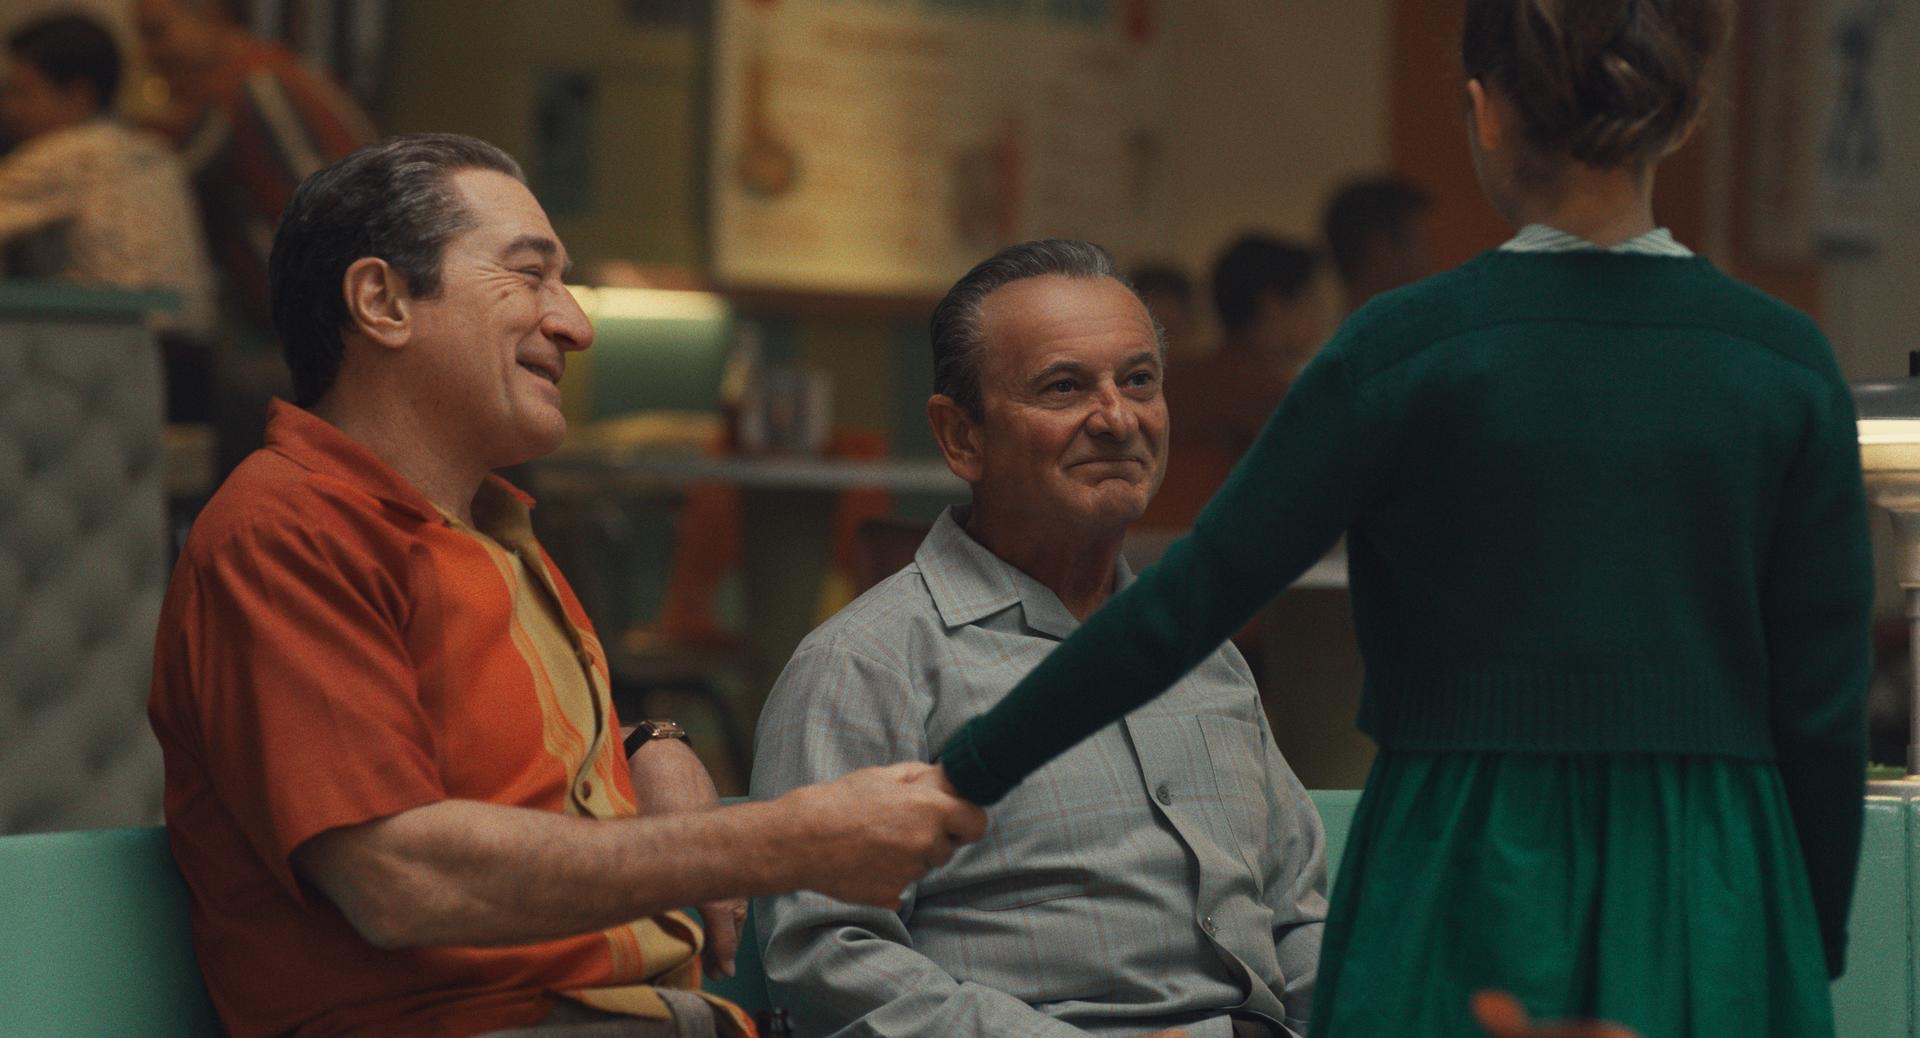 The Irishman: Joe Pesci (Russell Bufalino) and Robert De Niro (Frank Sheeran) at a bowling alley with their family